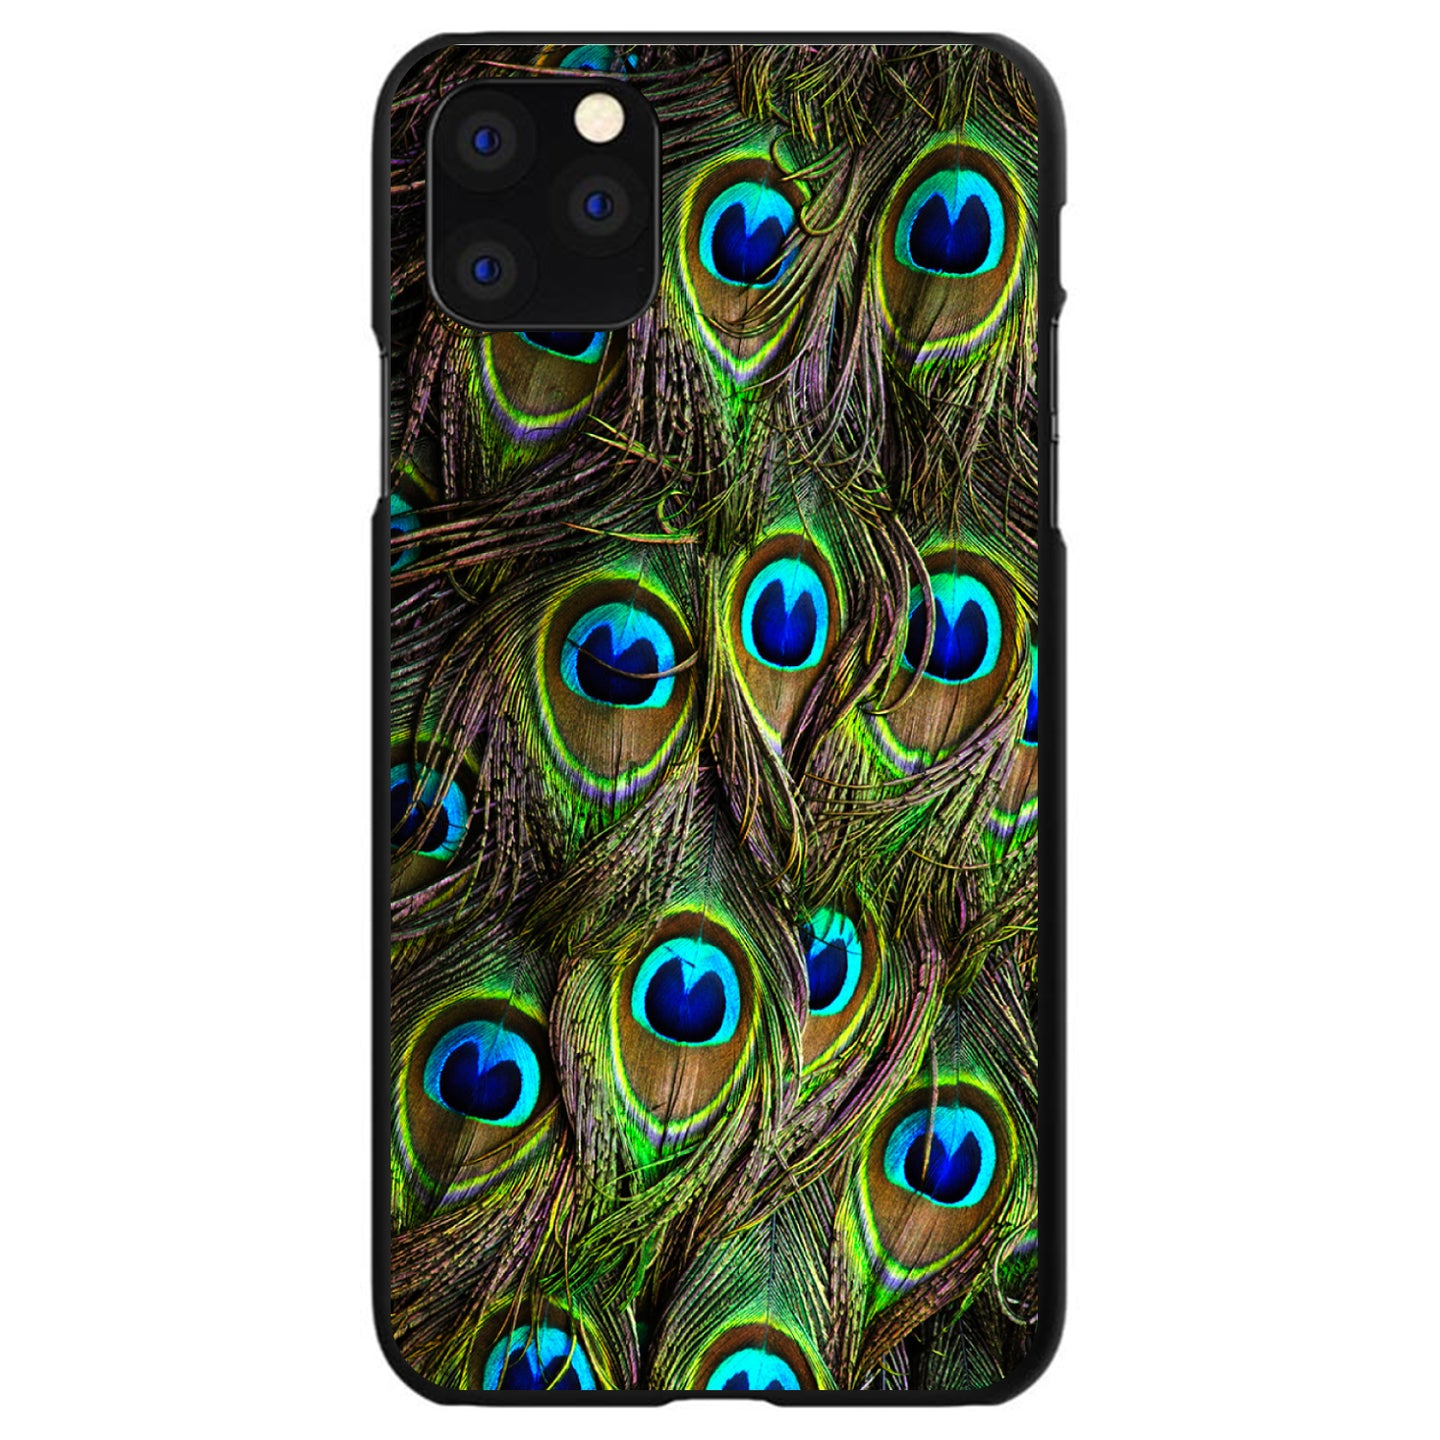 DistinctInk® Hard Plastic Snap-On Case for Apple iPhone - Peacock Feathers